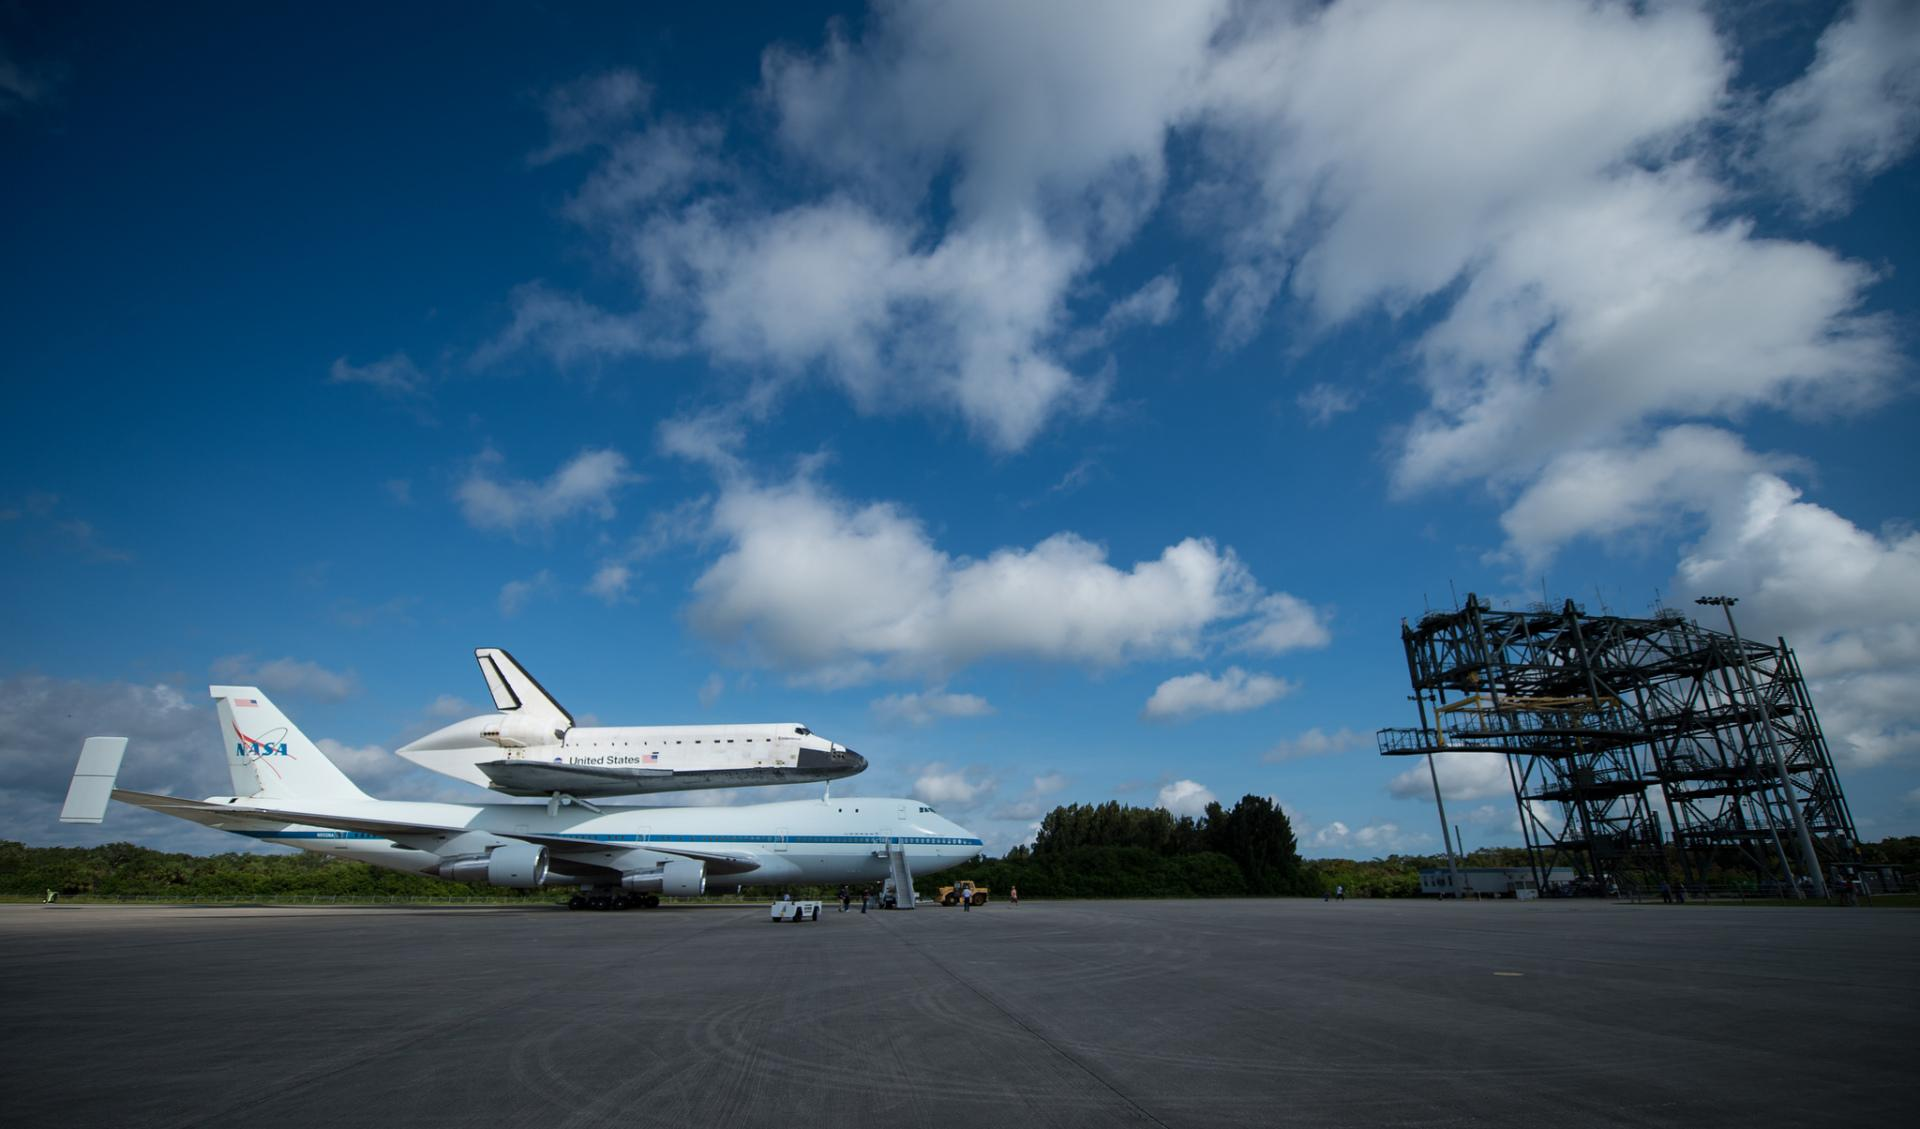 Space Shuttle Endeavour wallpapers HD quality